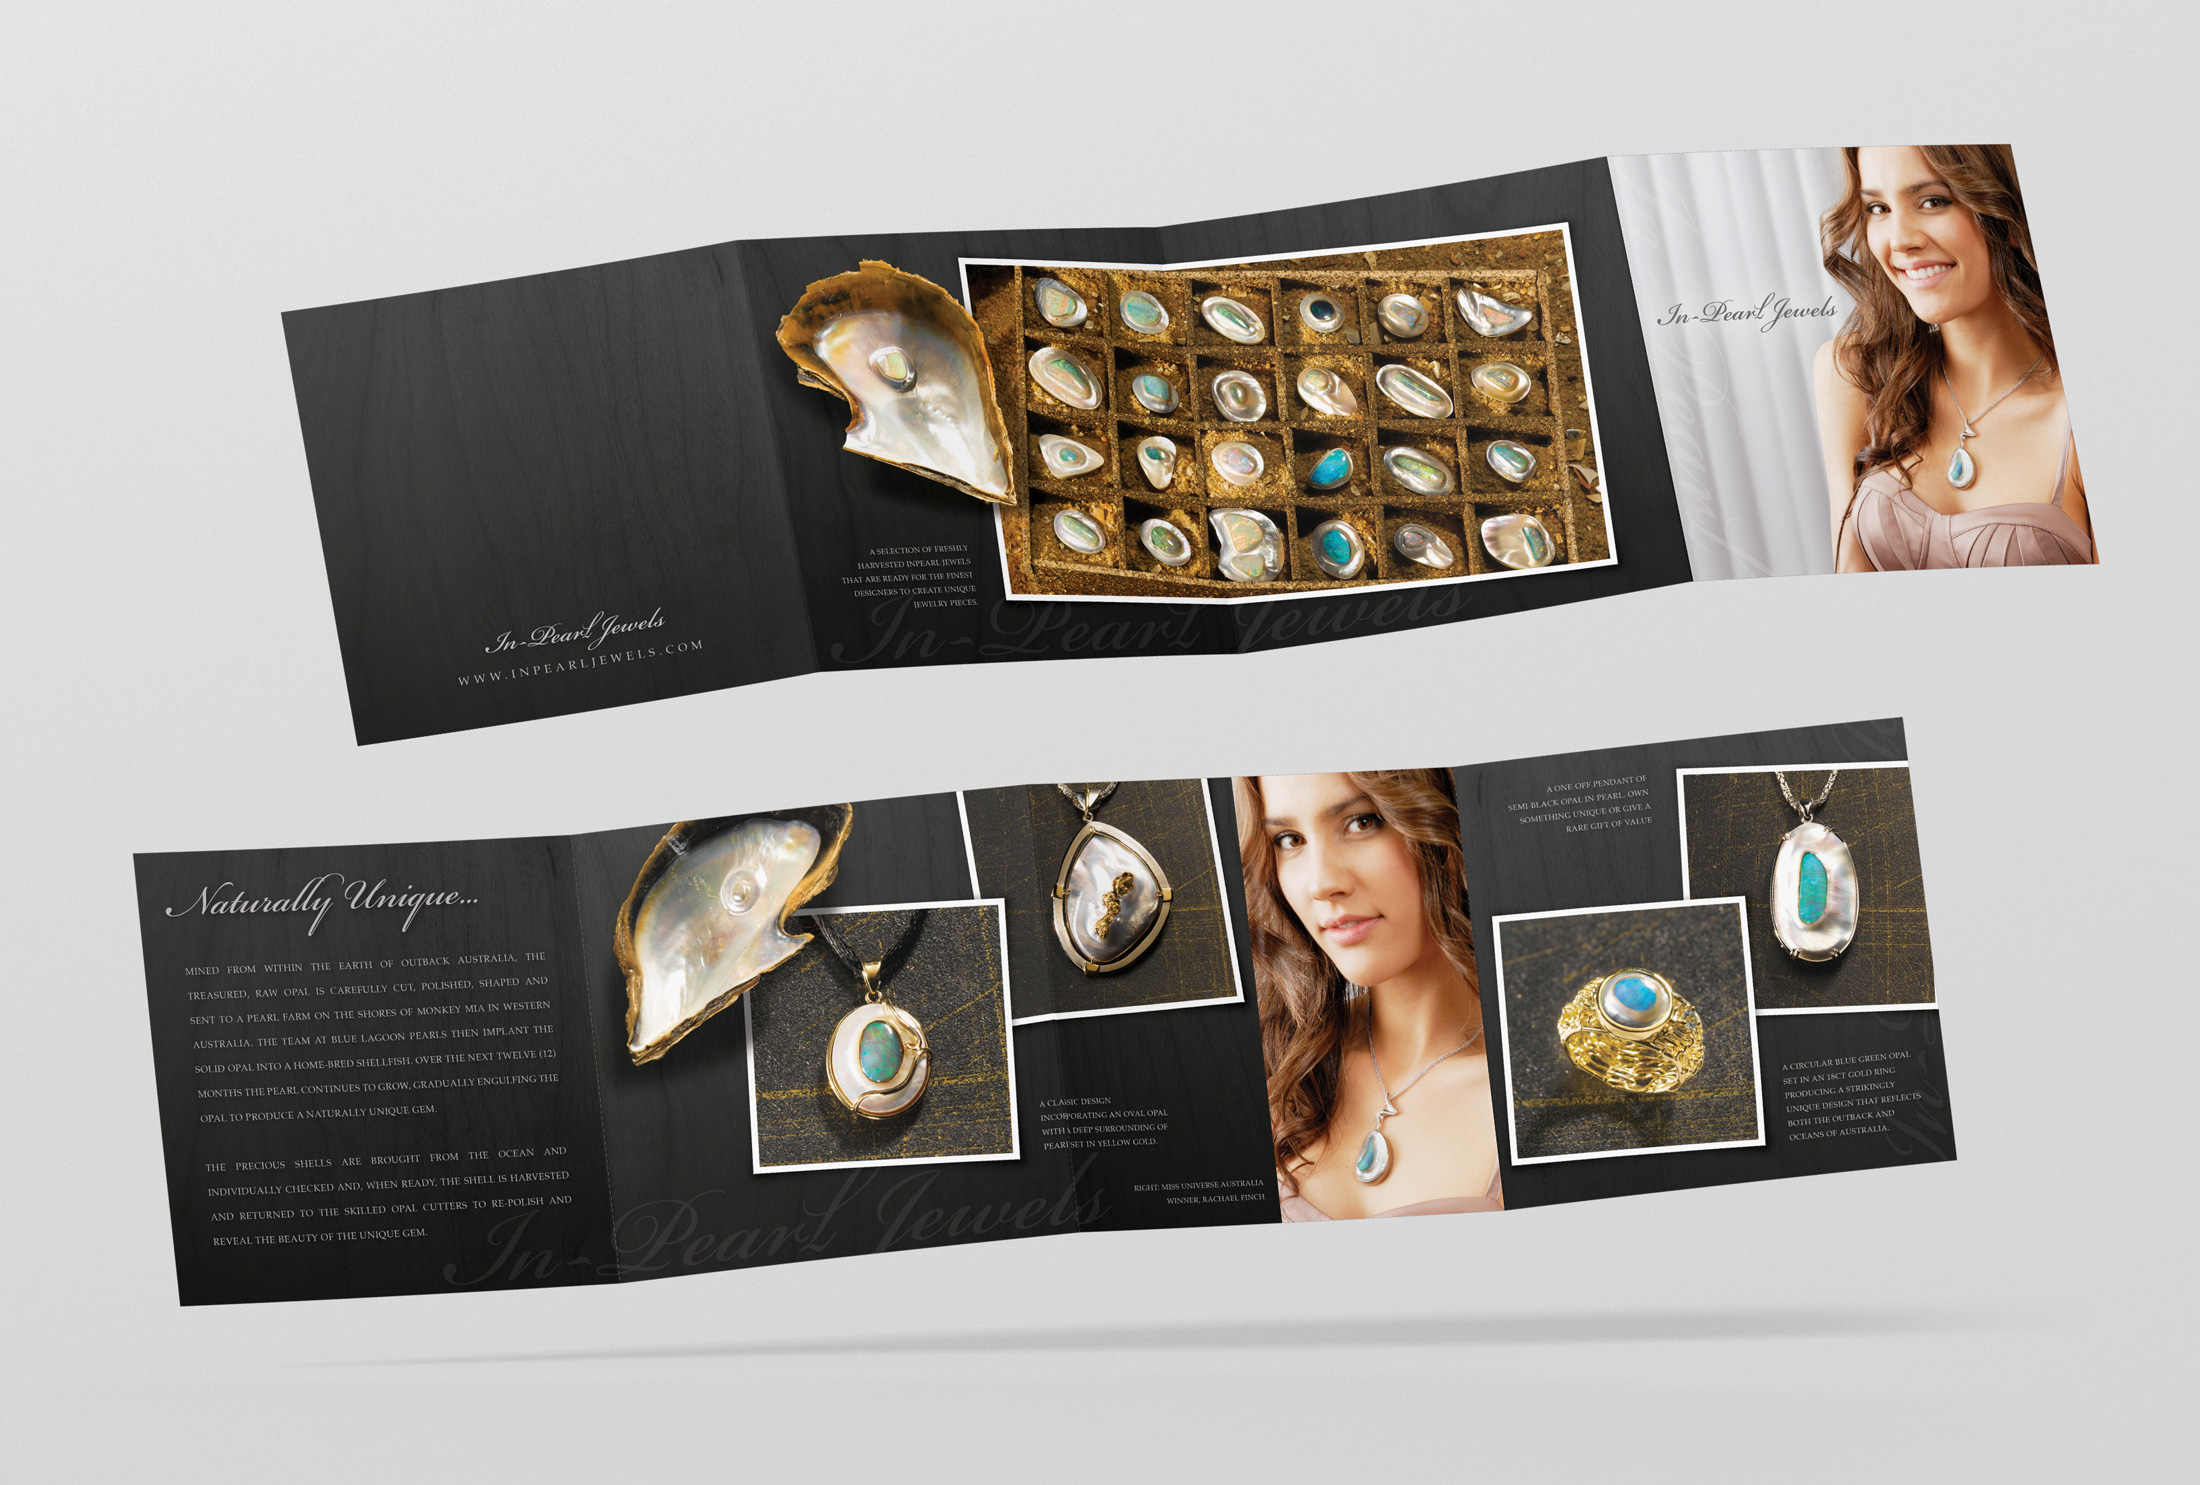 In-Pearl_Jewels-4pp_brochure_by_Craig_Thorne.jpg